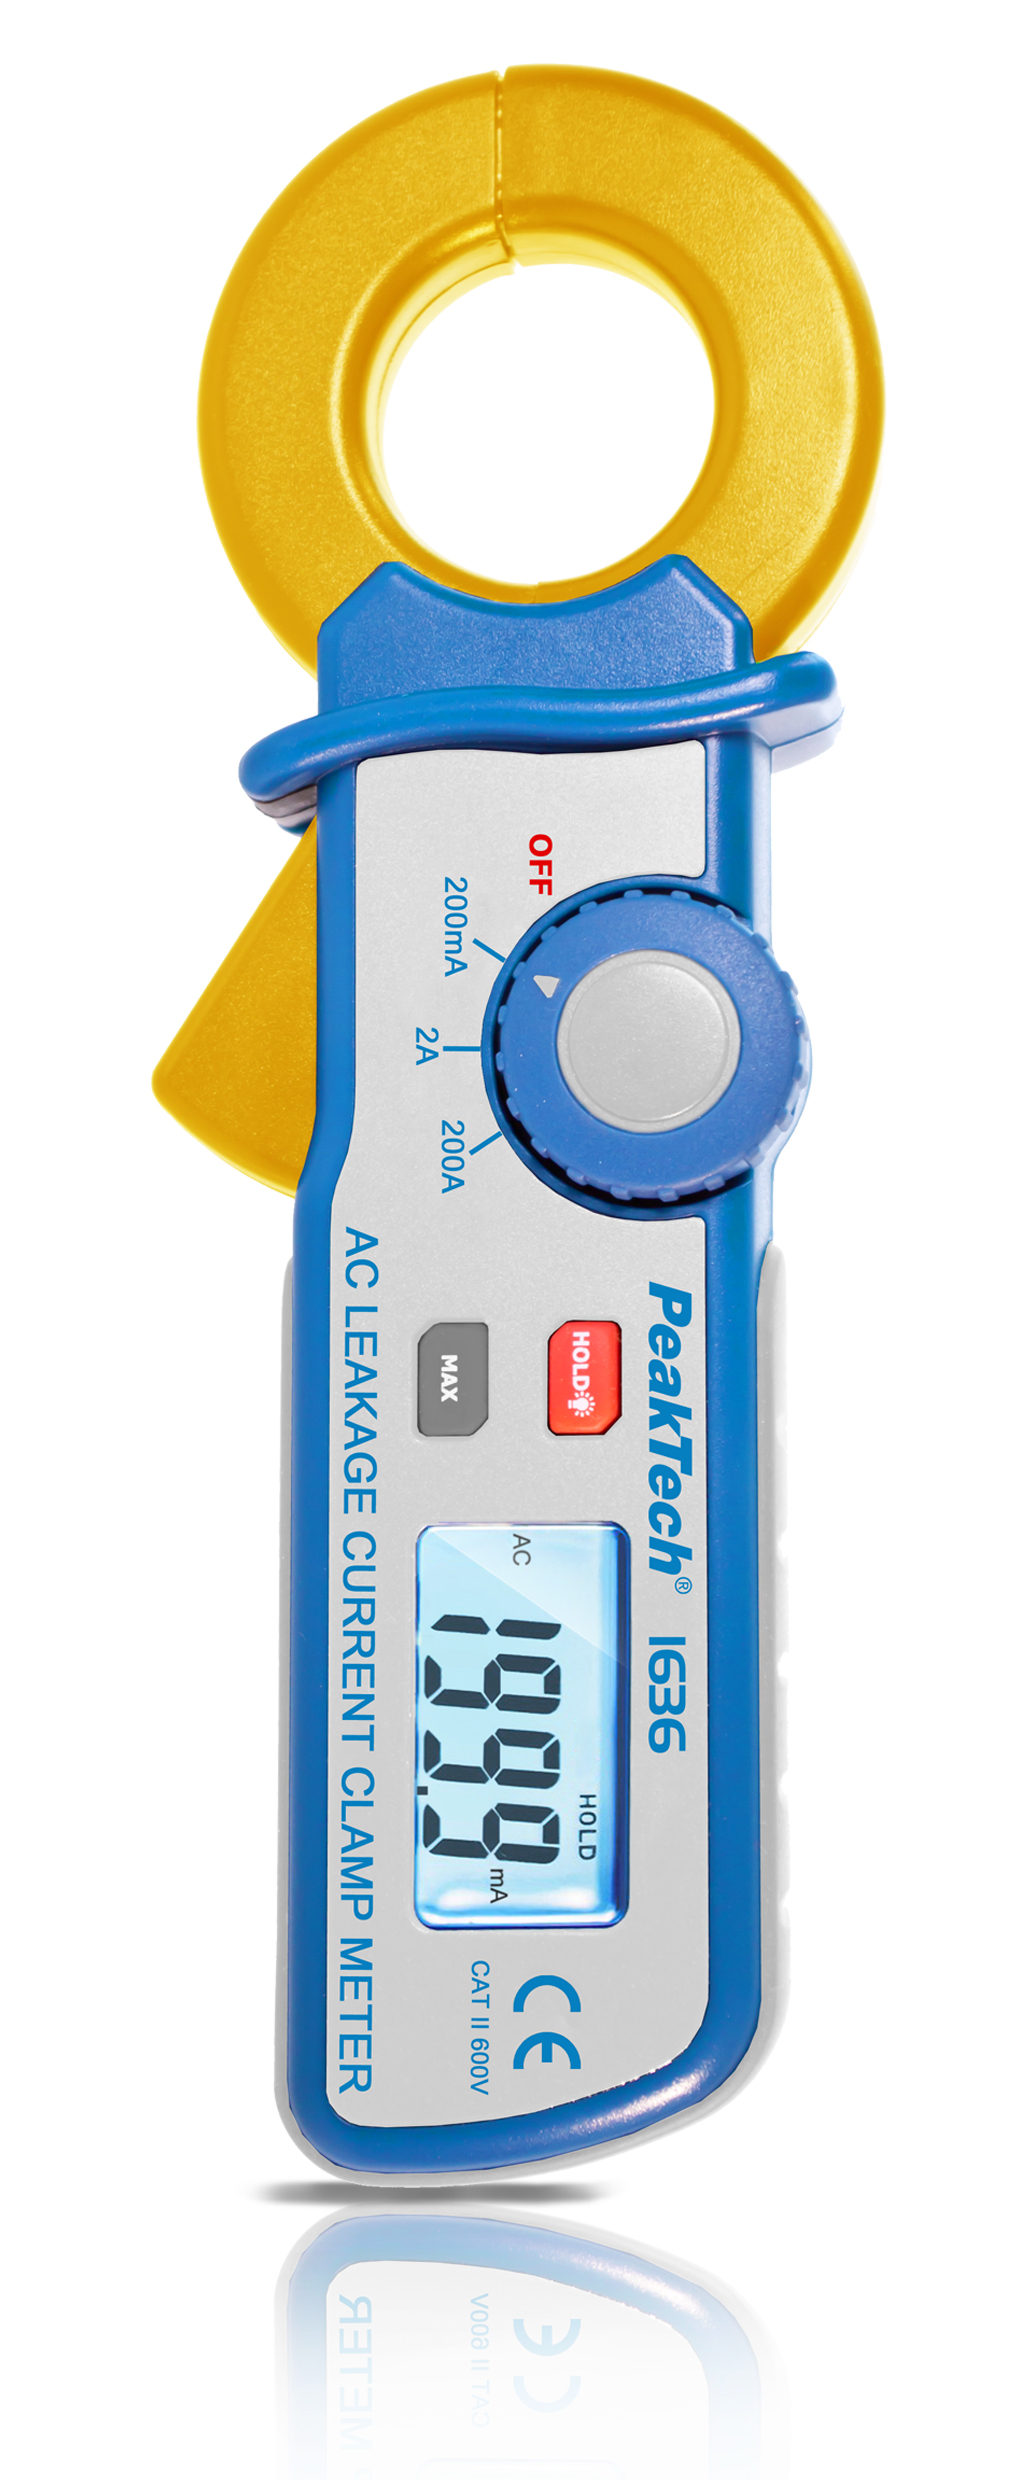 «PeakTech® P 1636» Leakage current clamp with a resolution of 100 µA